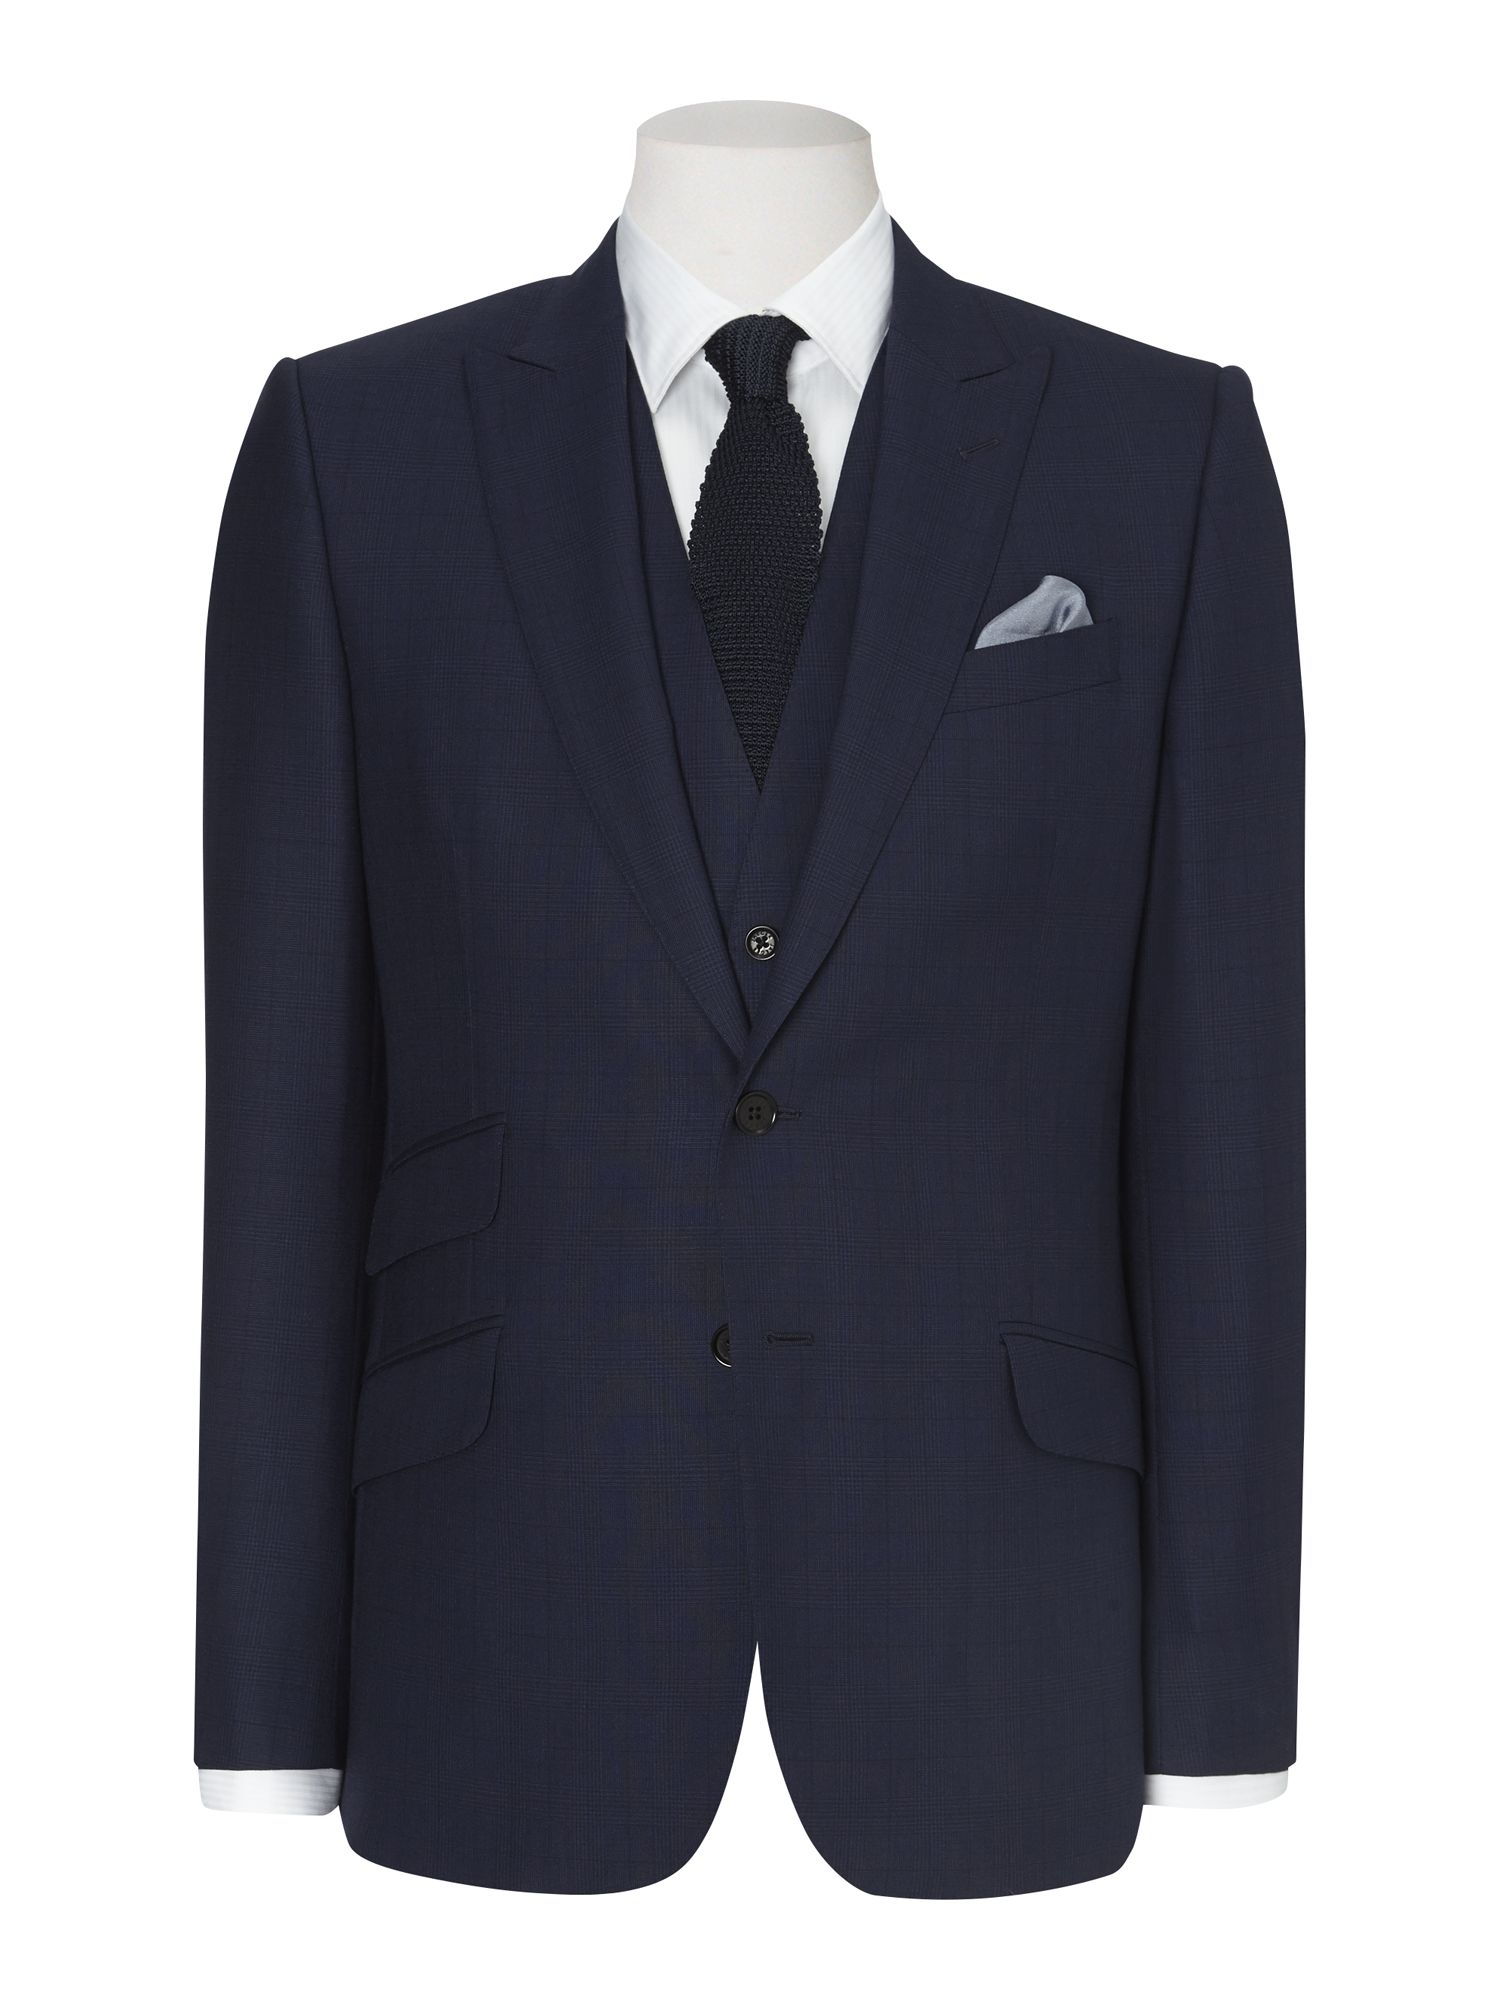 Eastbury single breasted suit jacket